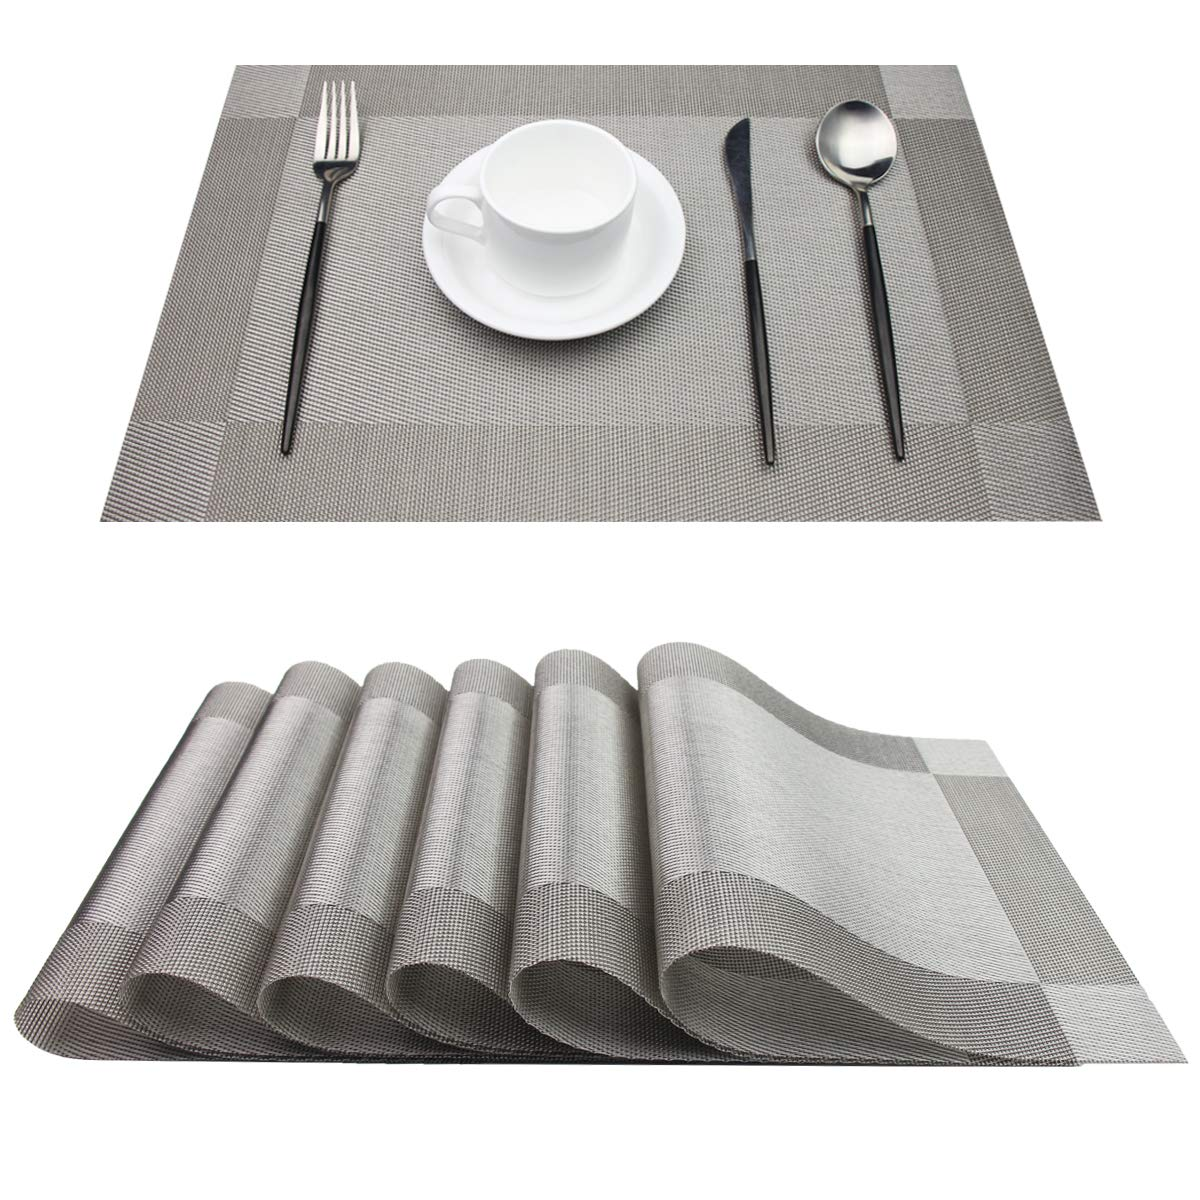 pigchcy Placemats,Heat-Resistant Non Slip Placemats Easy Wipe Clean Table Mats Woven Vinyl Placemats for Dining Table Set of 6 (Grey)